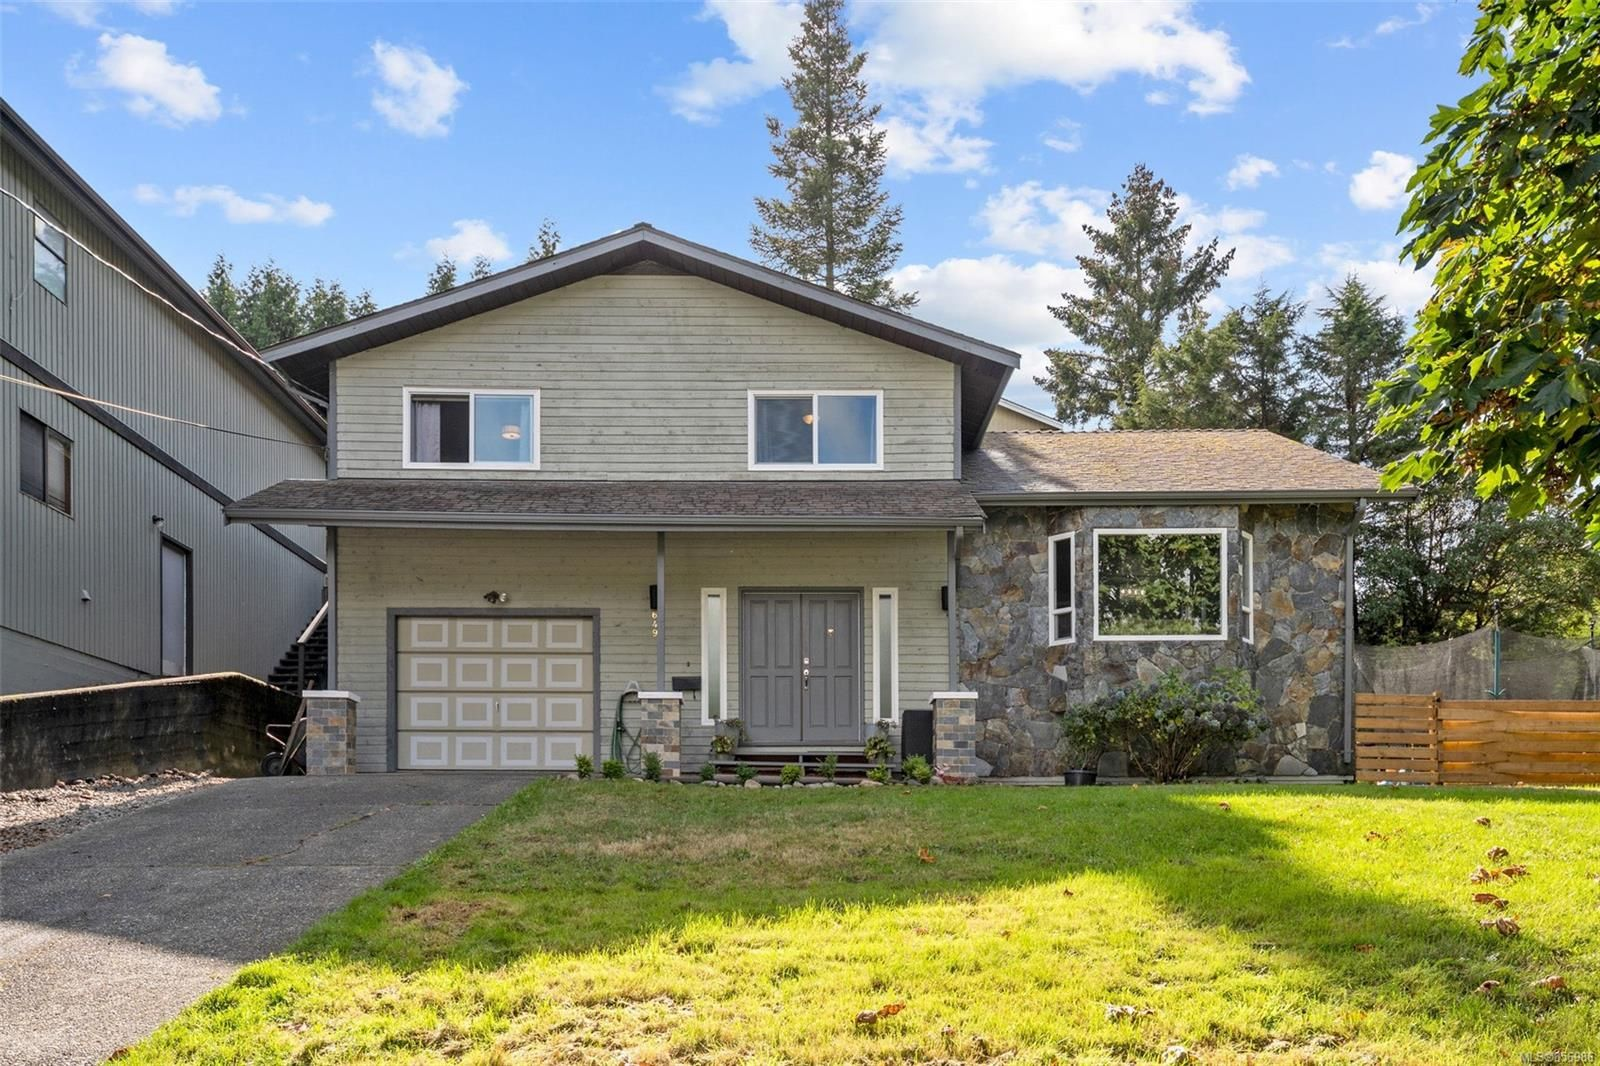 Main Photo: 649 Cairndale Rd in : Co Triangle House for sale (Colwood)  : MLS®# 856986